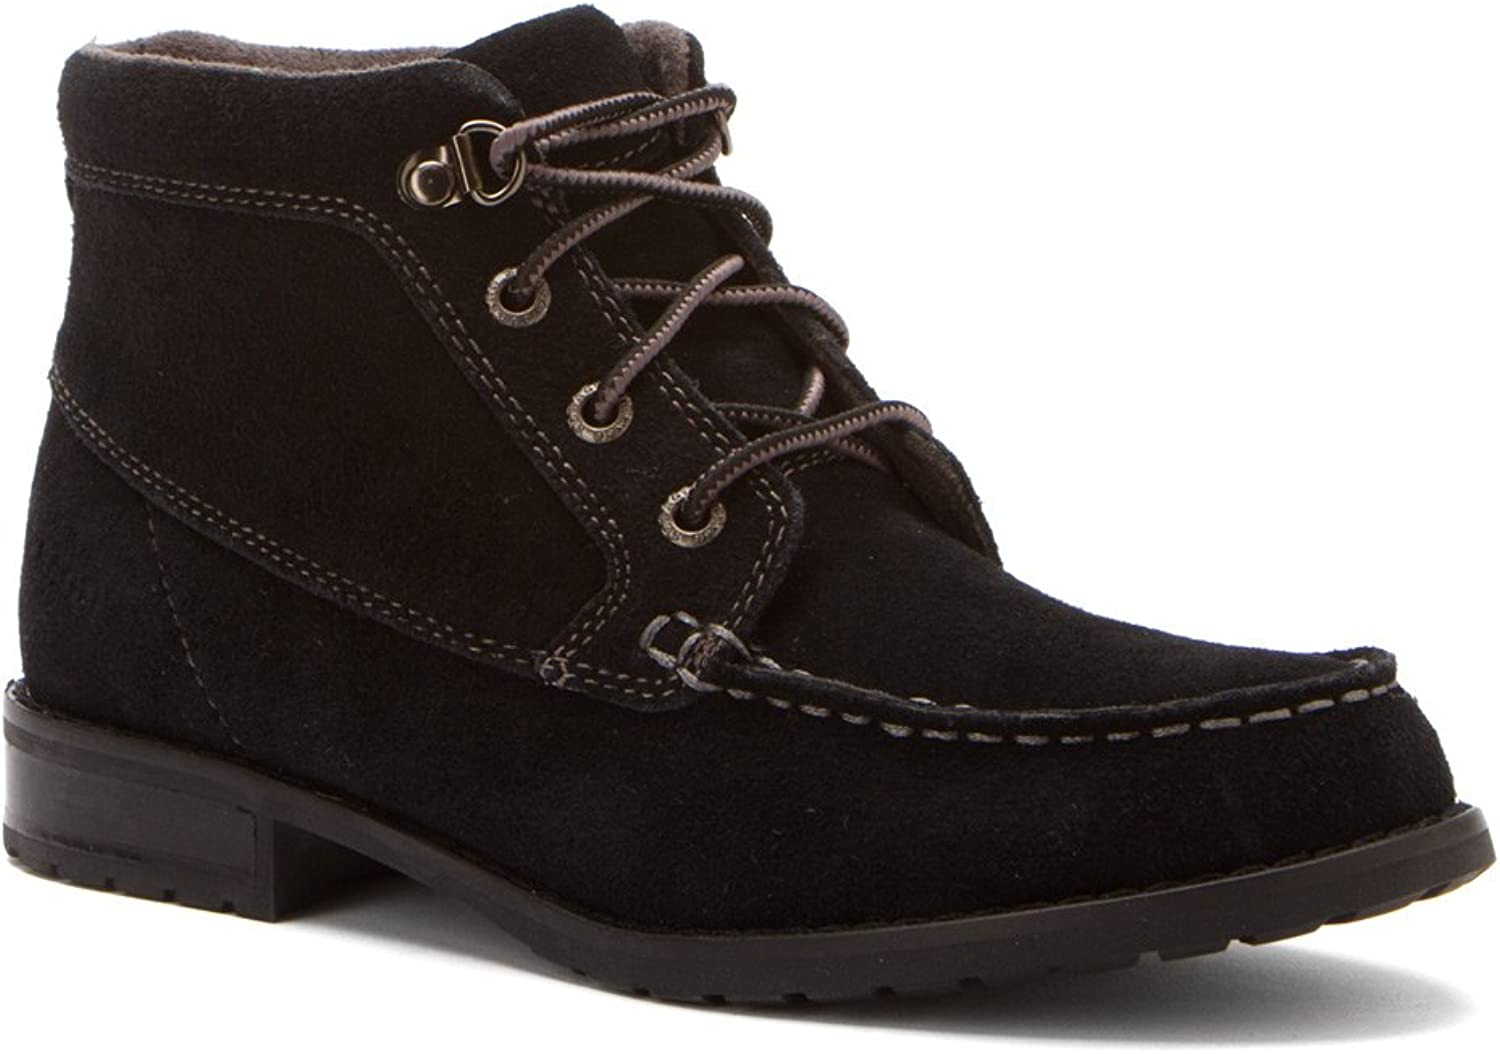 Sebago Women's Wander Lace Up Moccasin Work Boots